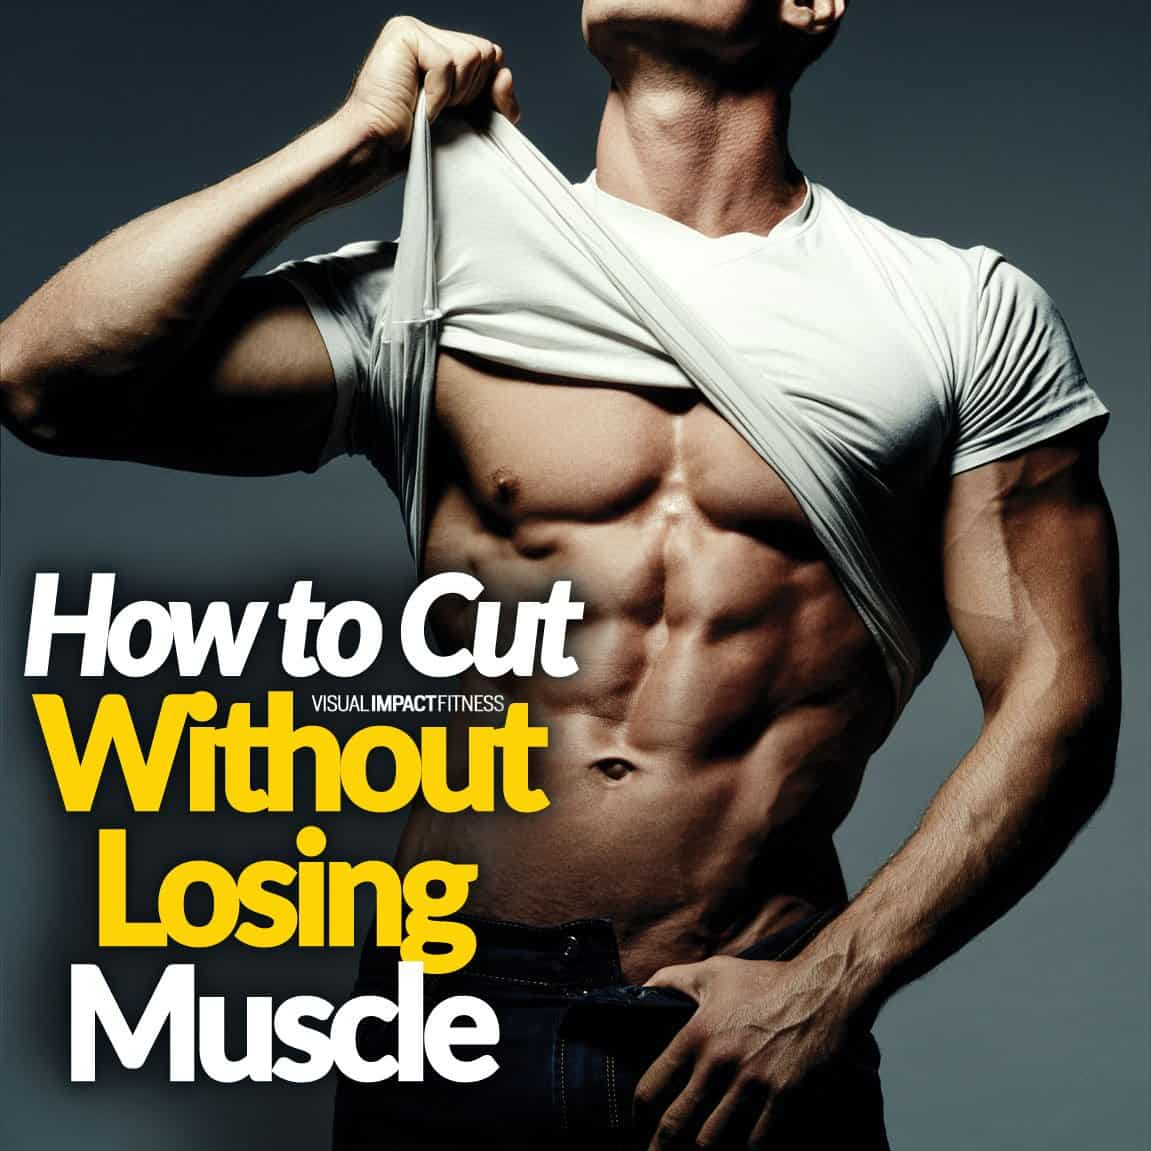 How to Cut Without Losing Muscle